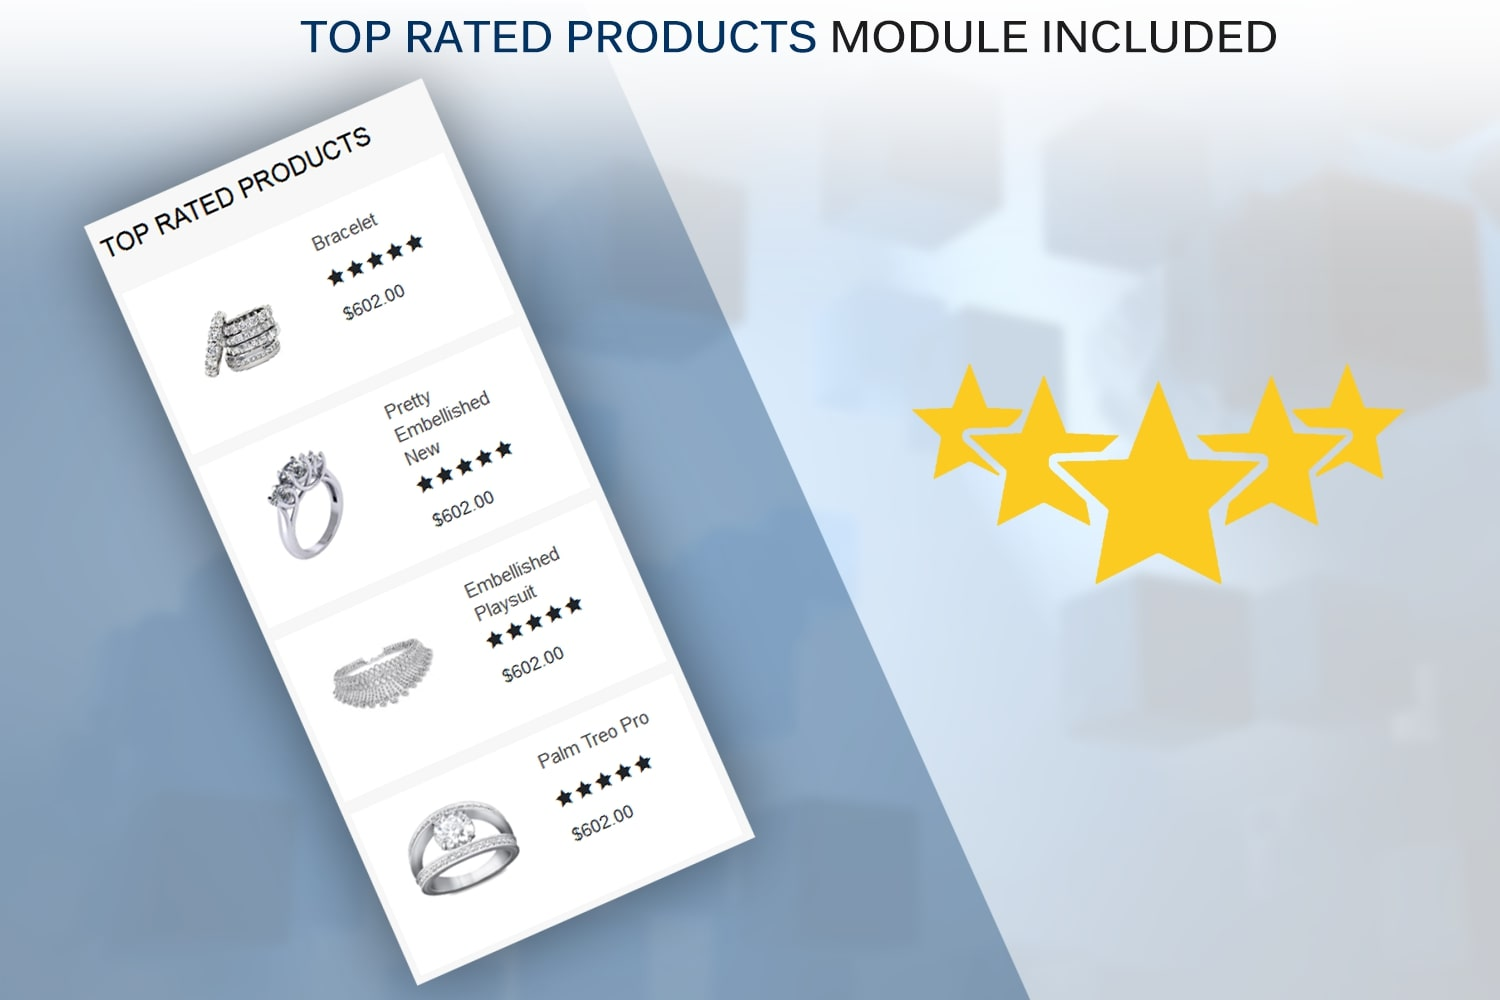 Top Rated Module Included